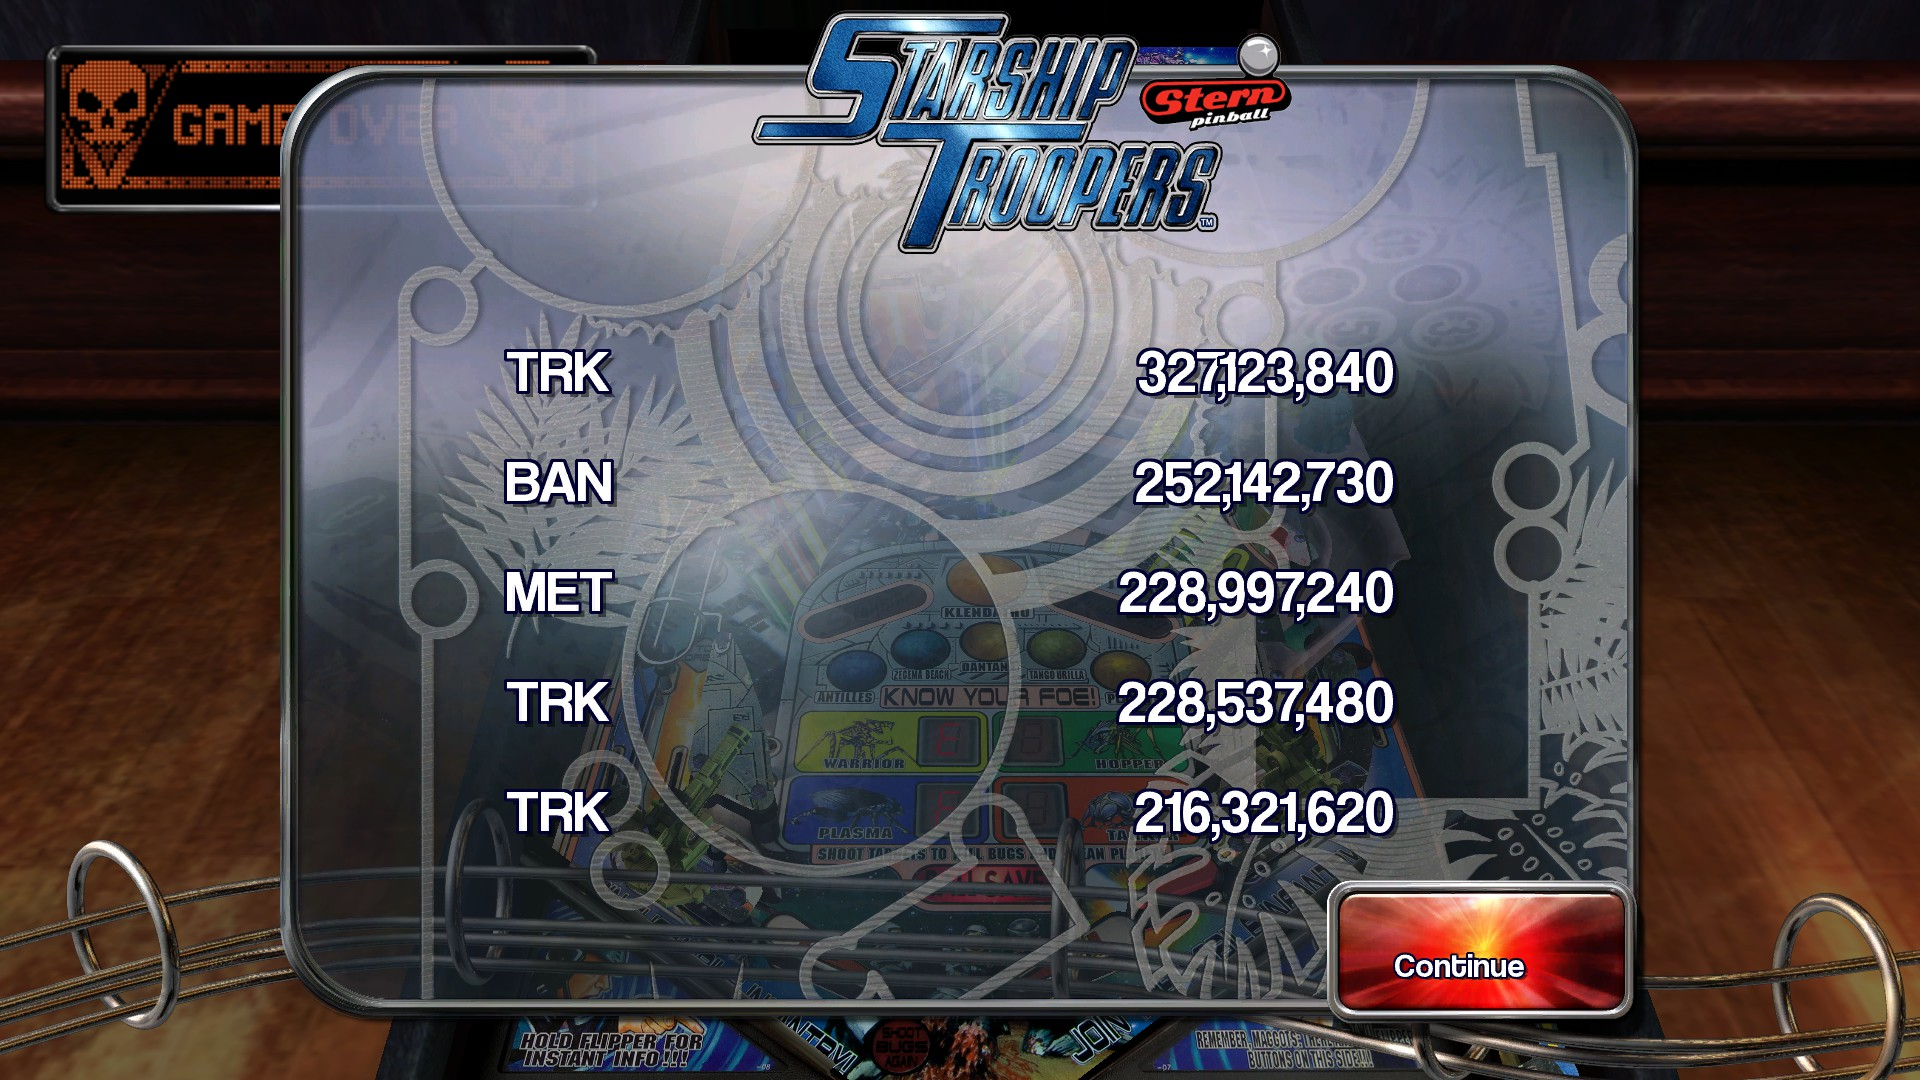 TheTrickster: Pinball Arcade: Starship Troopers (PC) 327,123,840 points on 2016-03-02 05:13:01